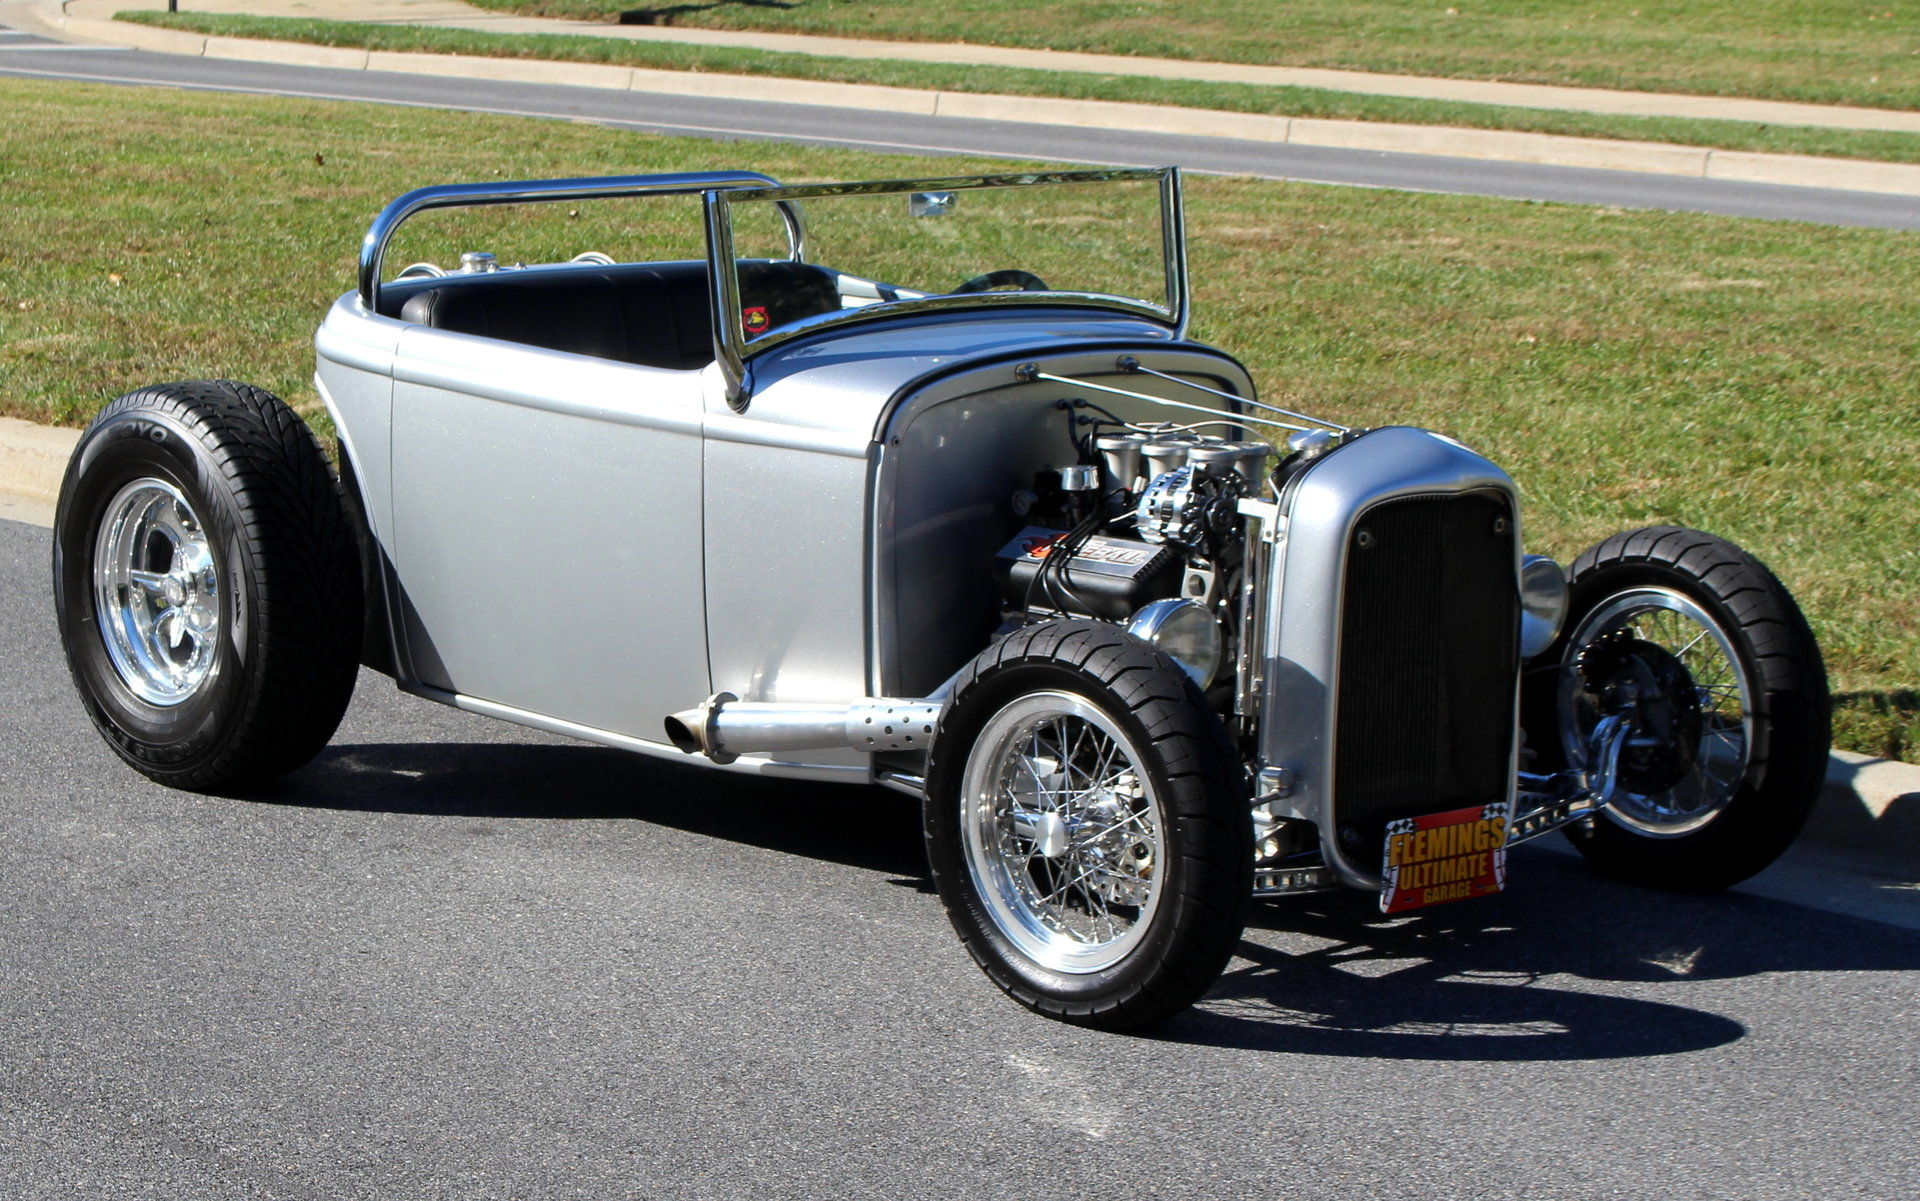 1932 Ford Street Rod Roadster for sale #66009 | MCG